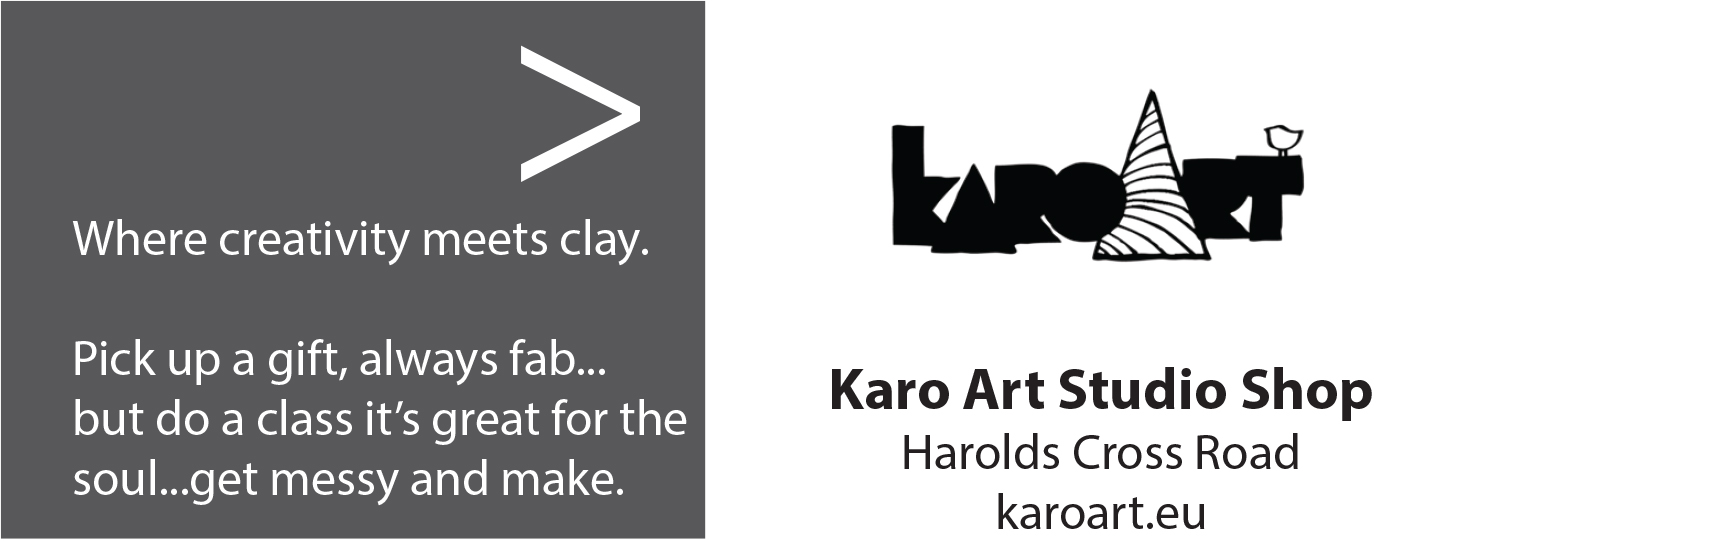 Karo Art Studio Shop Logo